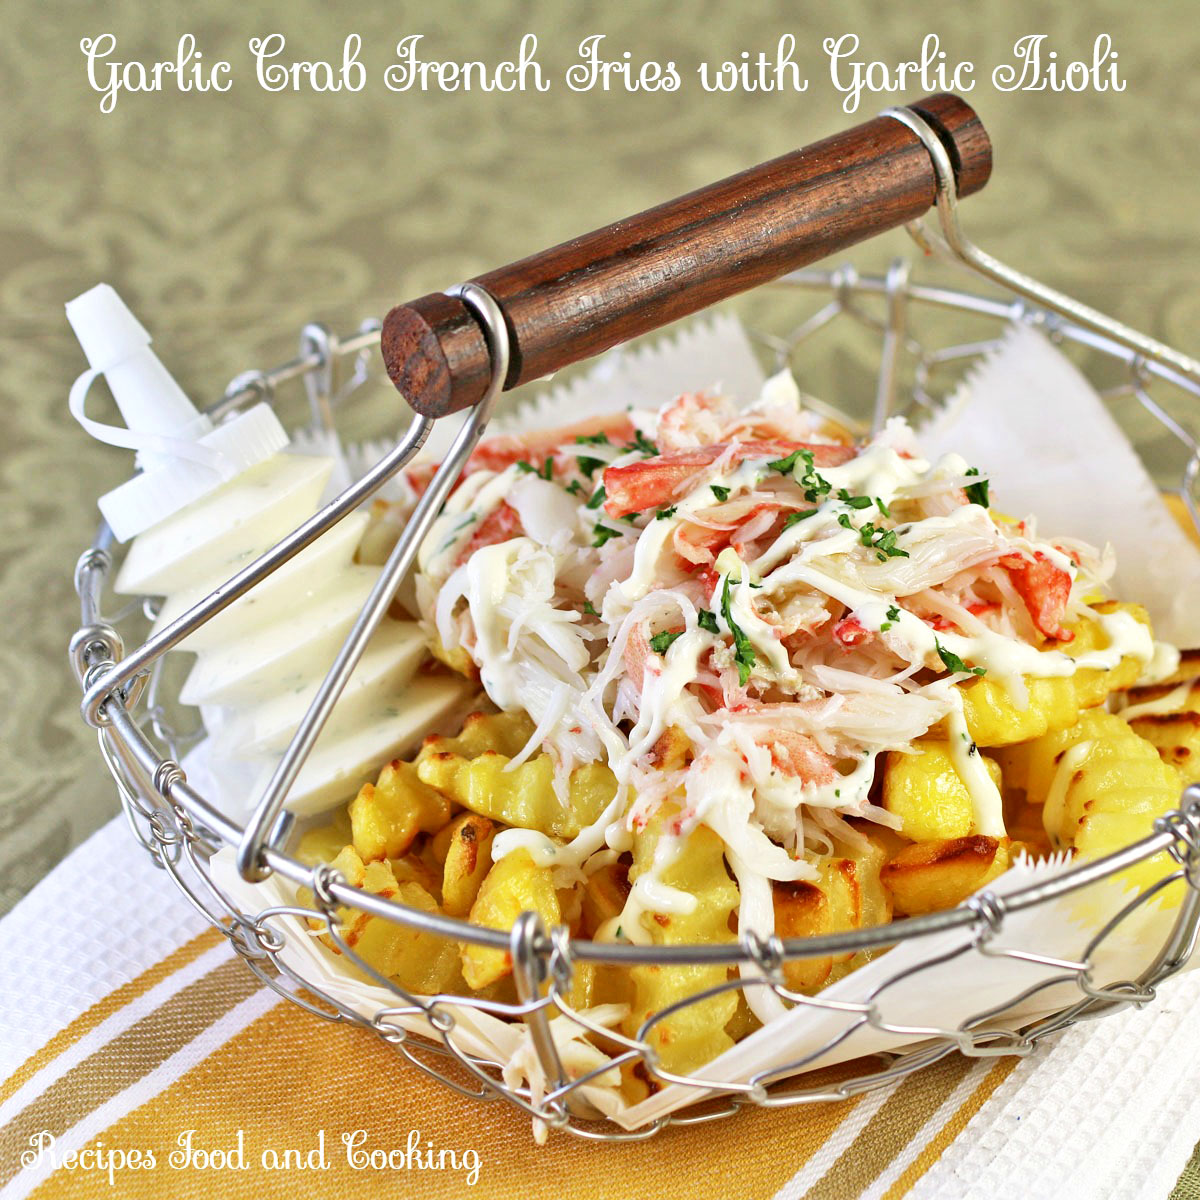 Garlic Crab French Fries with Garlic Aioli